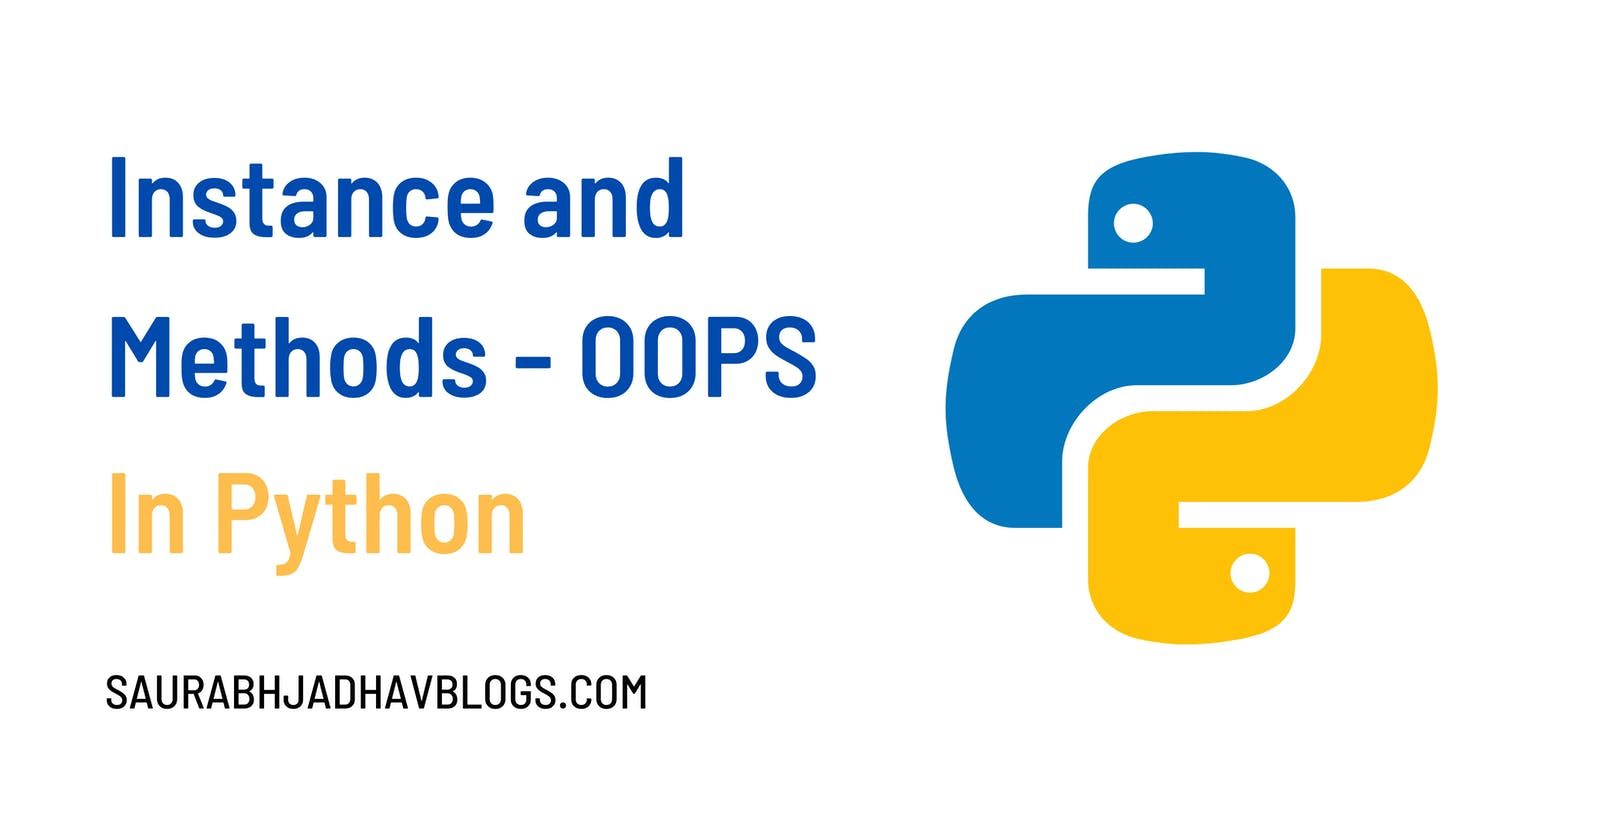 Instance and Methods in Class - Object Oriented Programming in Python